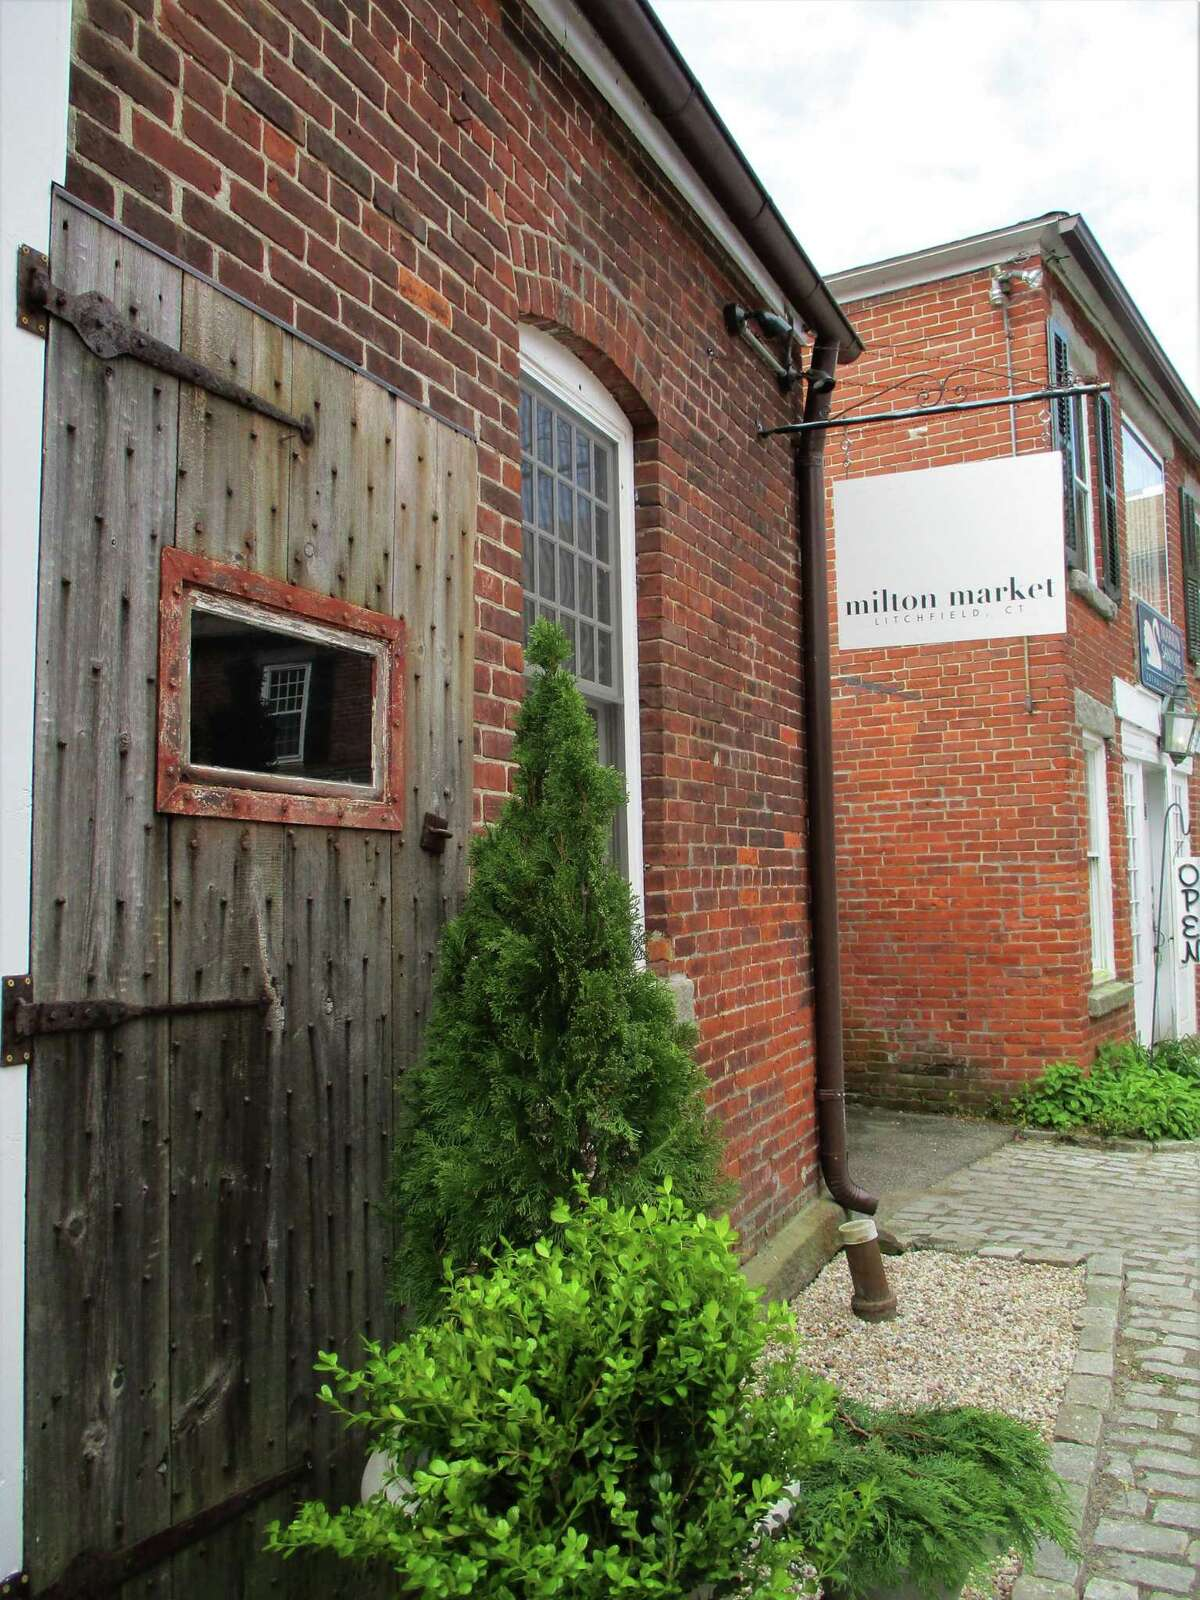 The exterior of Milton Market keeps the rustic character of the building, which was once used by a blacksmith when horse-and-carriage was the local transport.